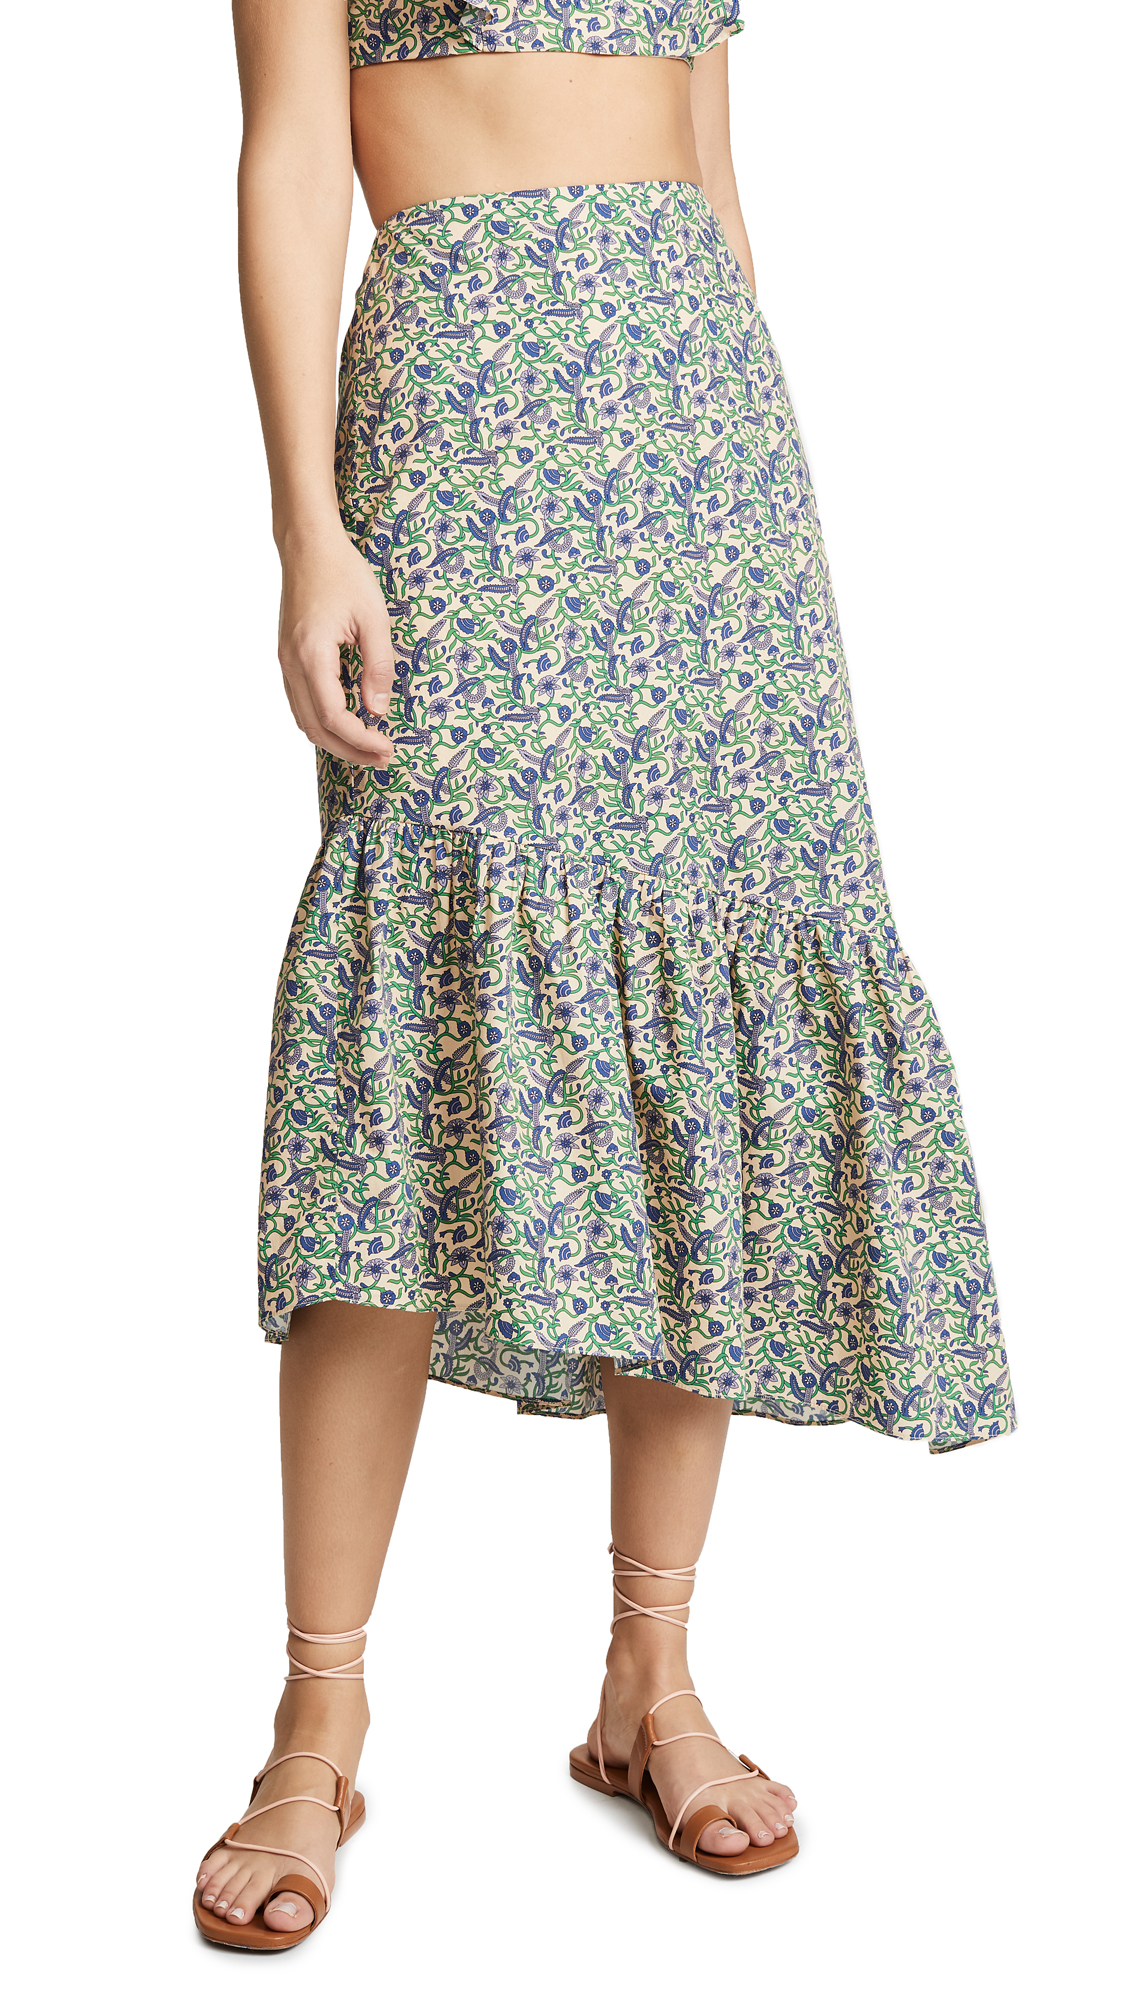 6 SHORE ROAD Floral Skirt in Green Vines